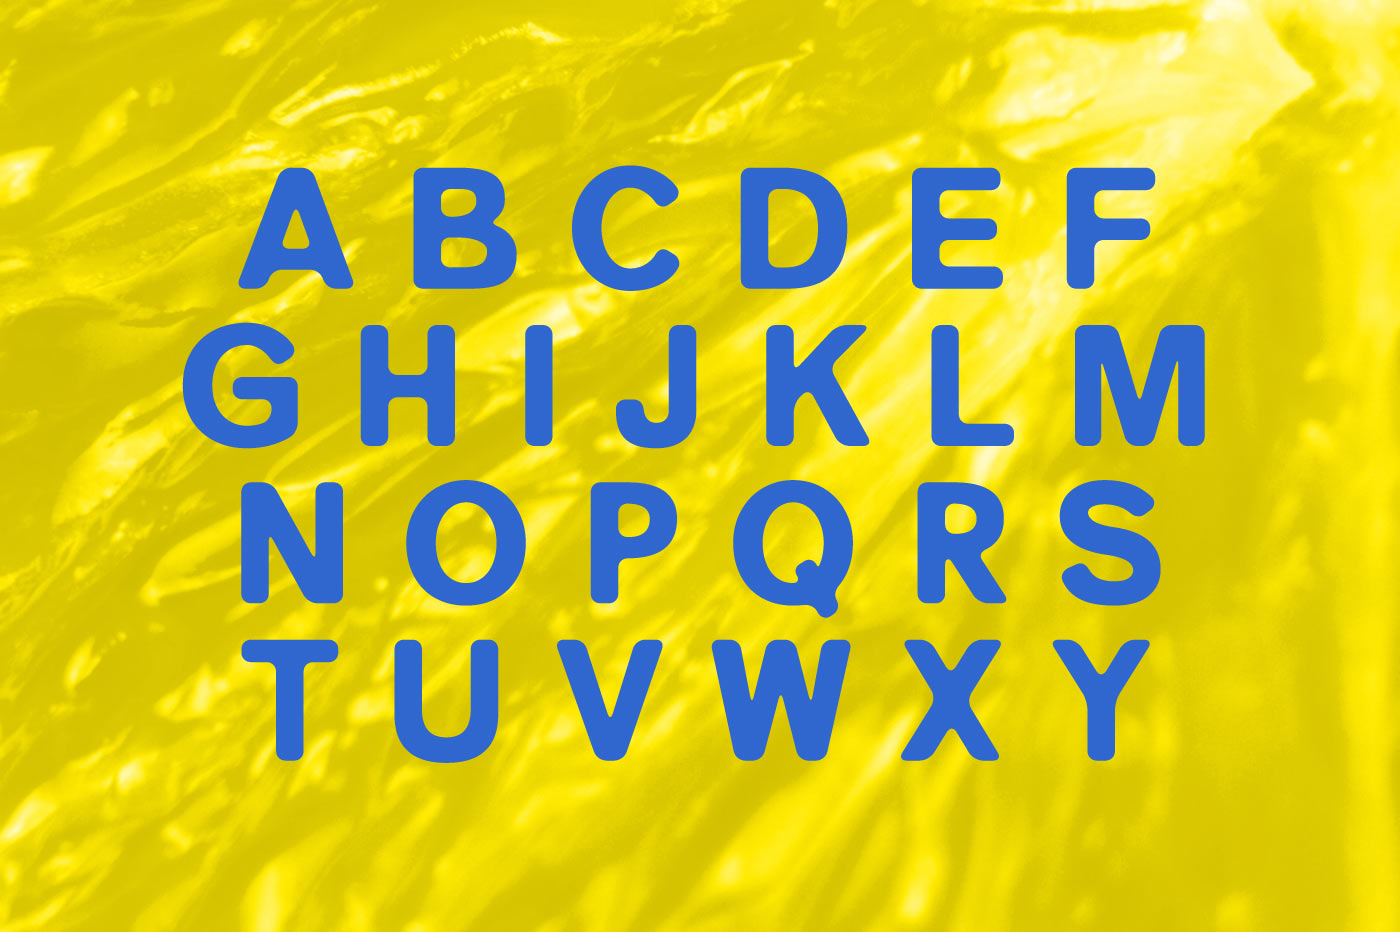 Obly Grotesk example image 4